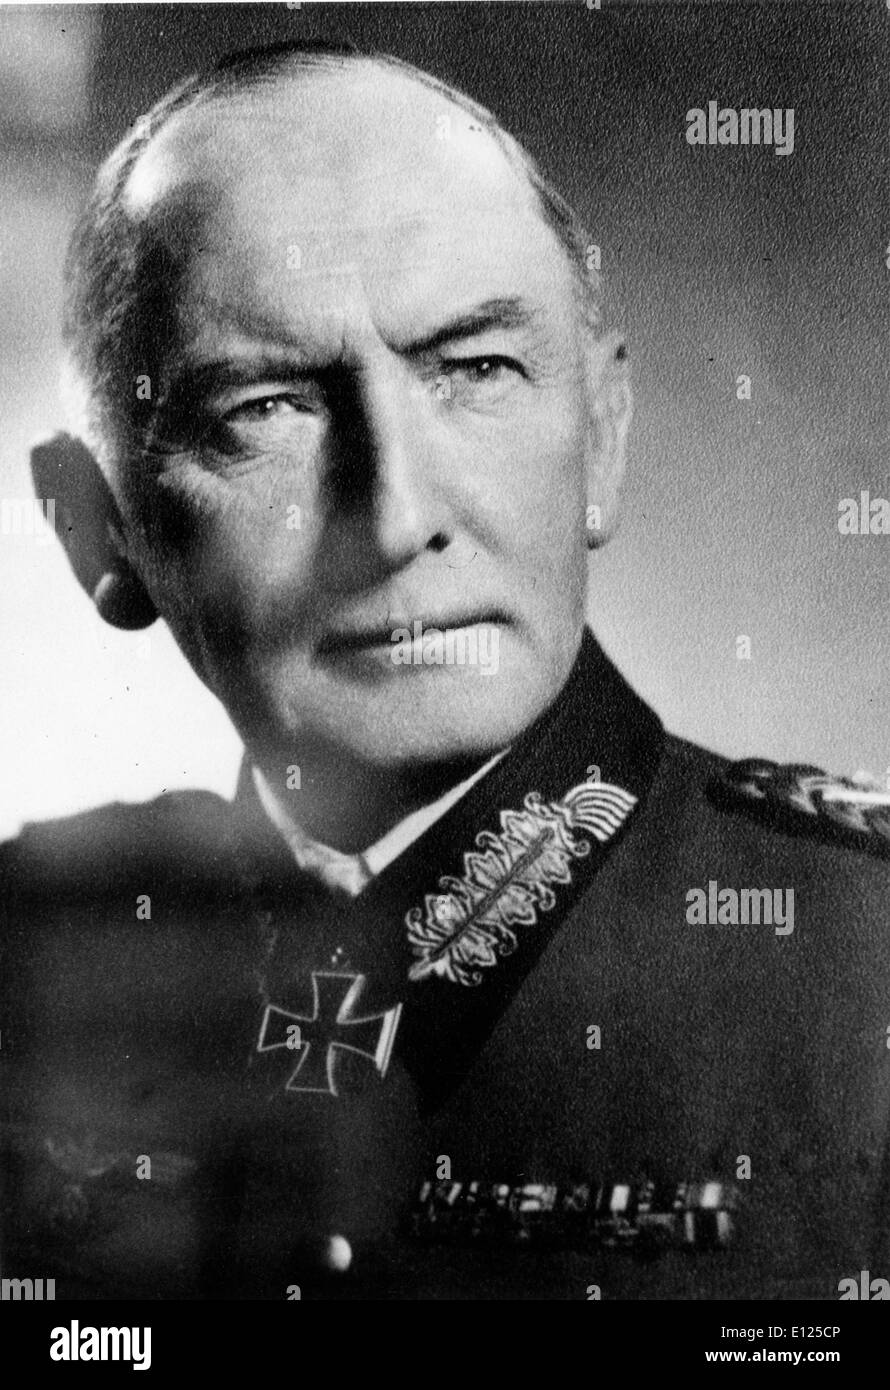 Field marshall ERWIN VON WITZLEBEN before he was arrested and executed for assassination attempt against Hitler - Stock Image